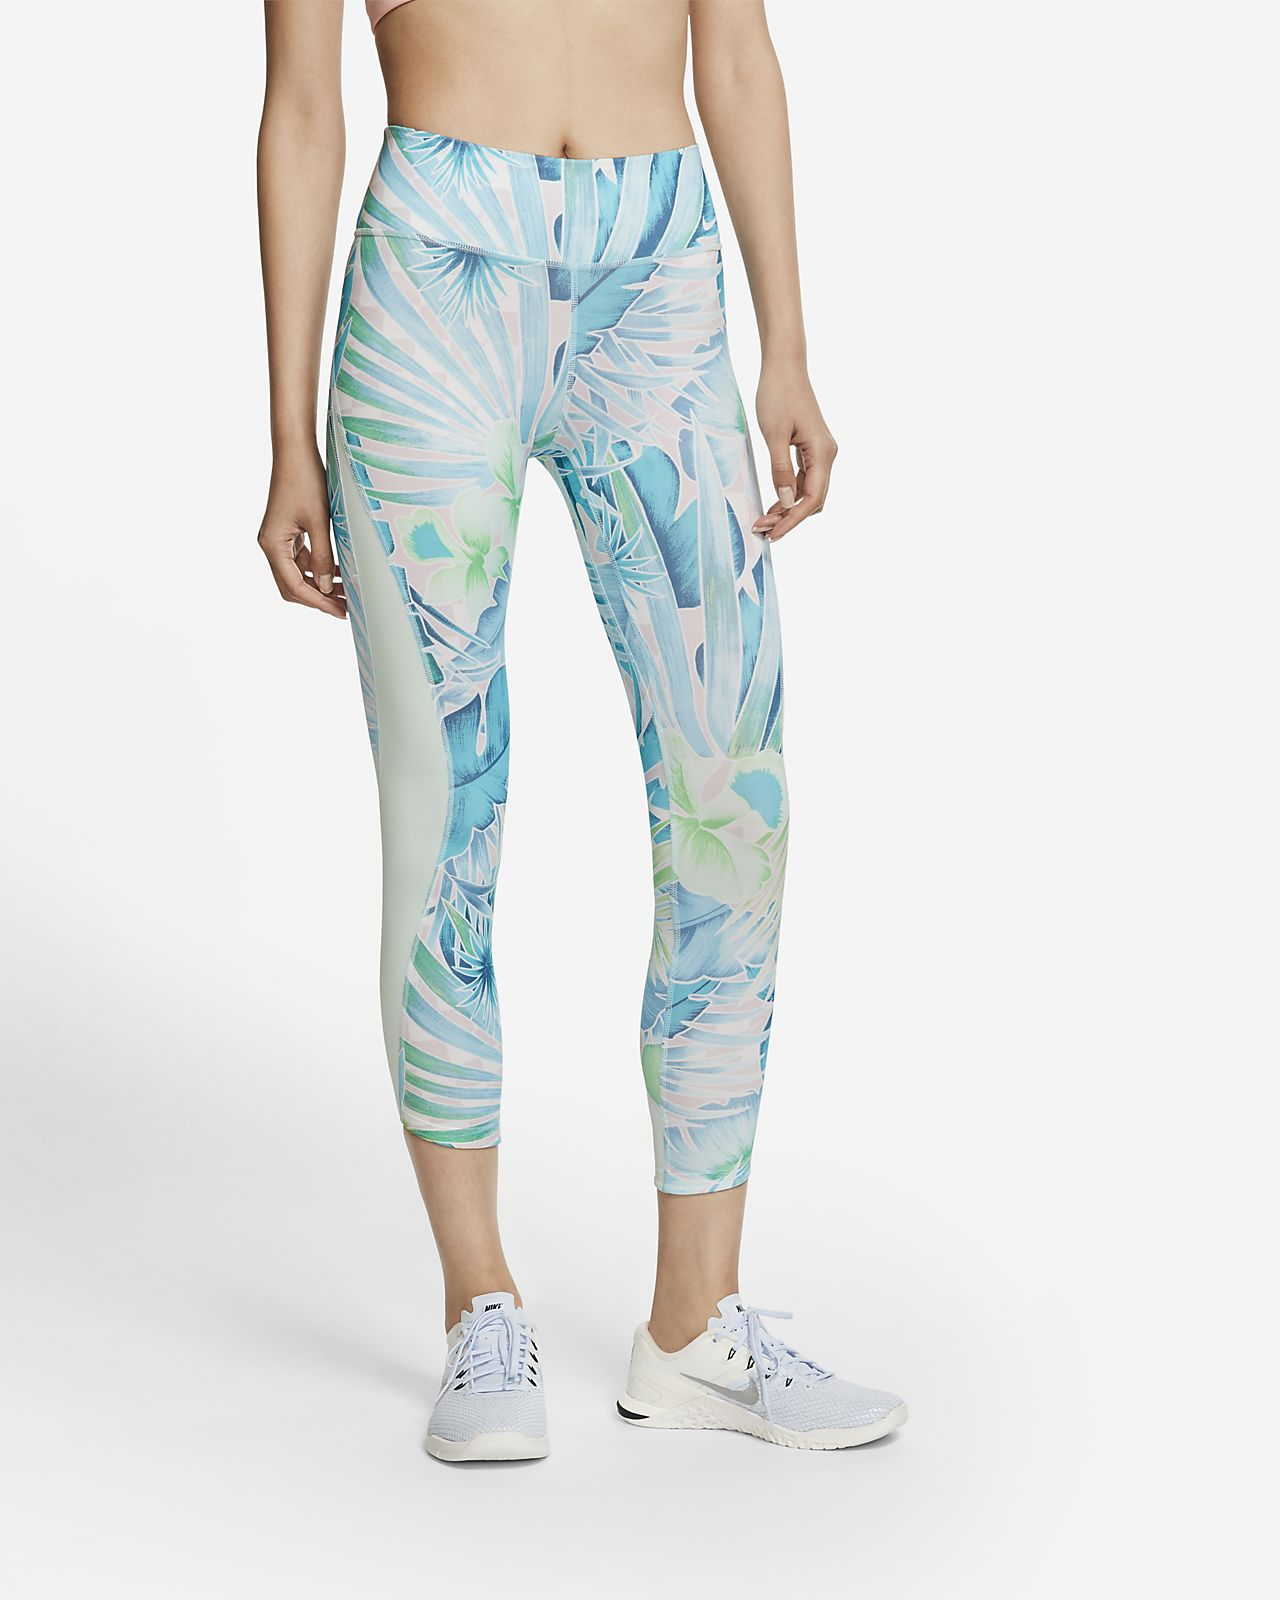 Nike One Women's Printed 7/8 Training Tights